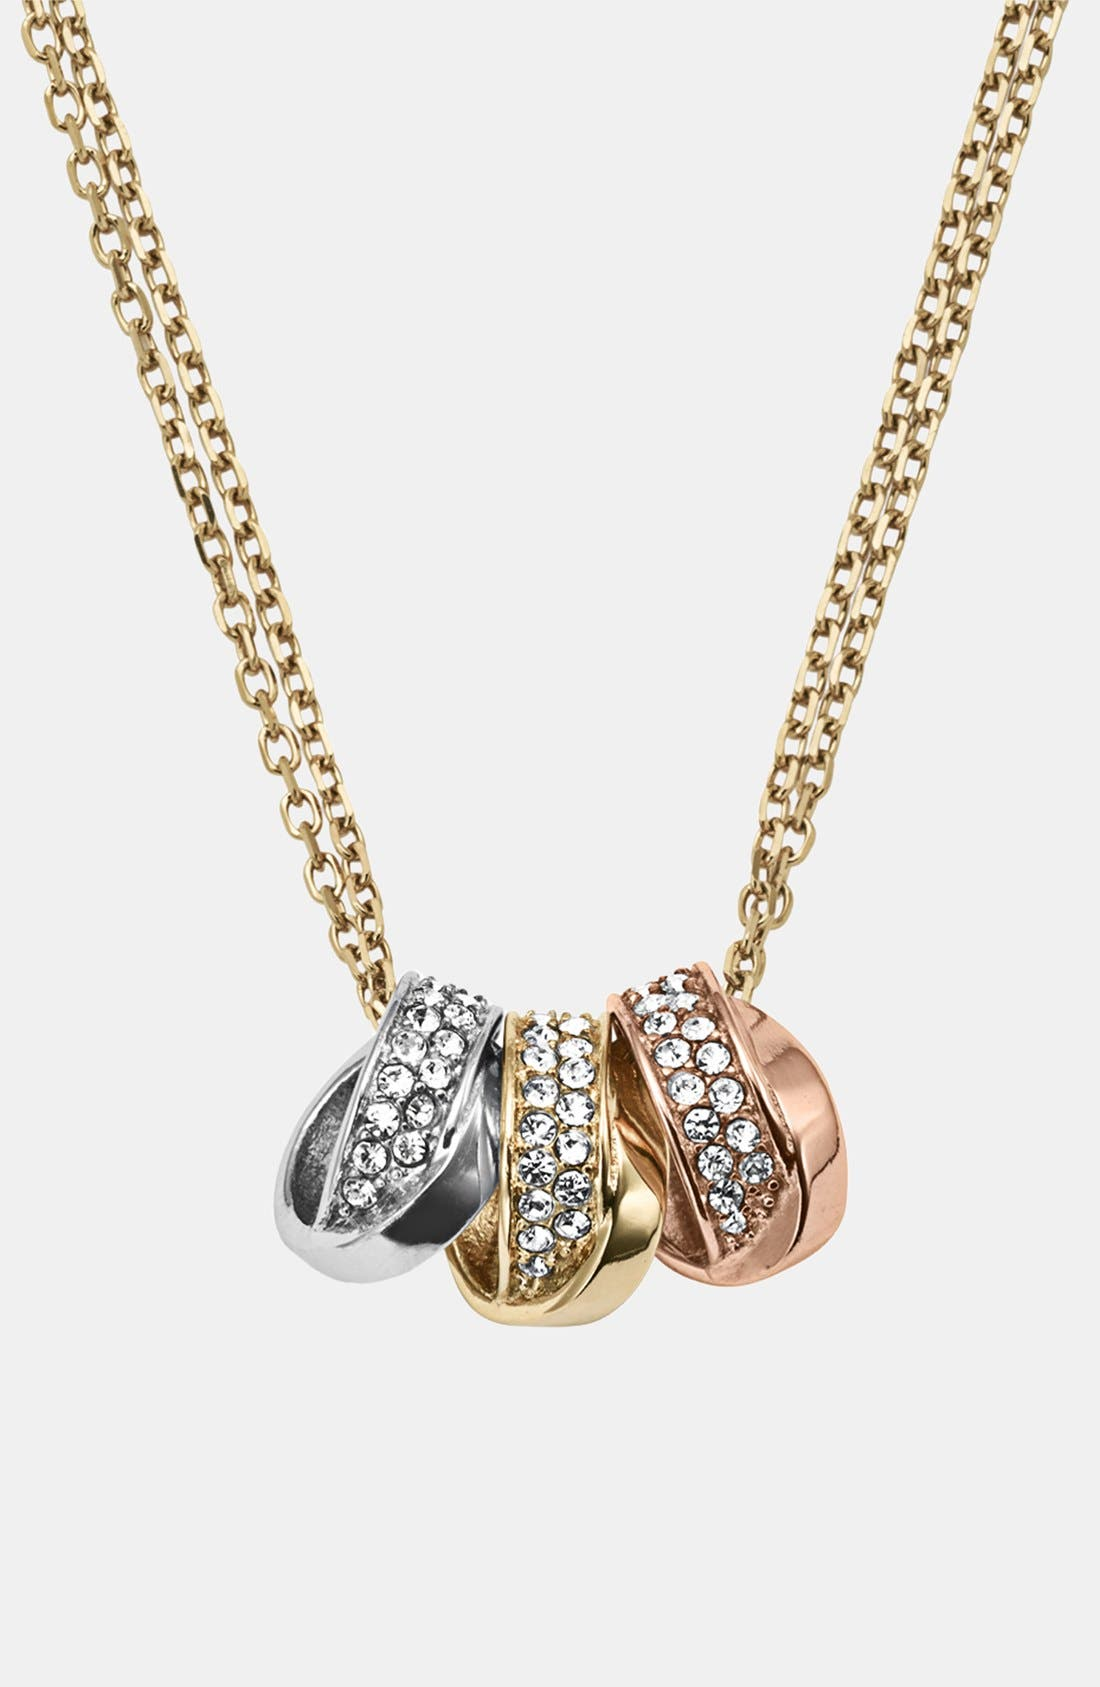 Main Image - Michael Kors 'Statement Brilliance' 3-Ring Necklace